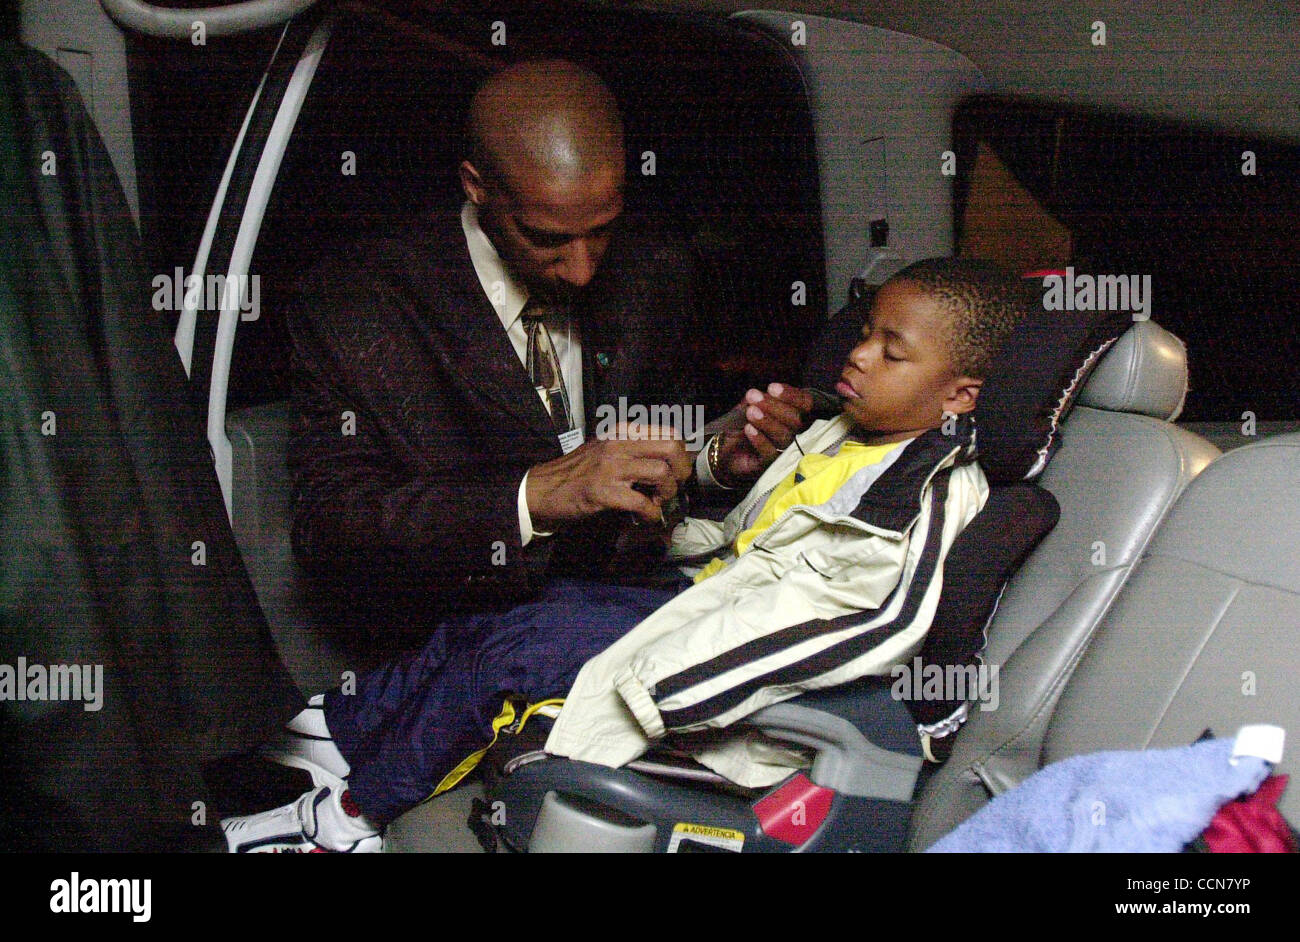 0531 AM Jason Branden Right Straps His 3 Year Old Isaiah Into The Car Seat Before Morning Commute Out Of Antioch California On Thursday